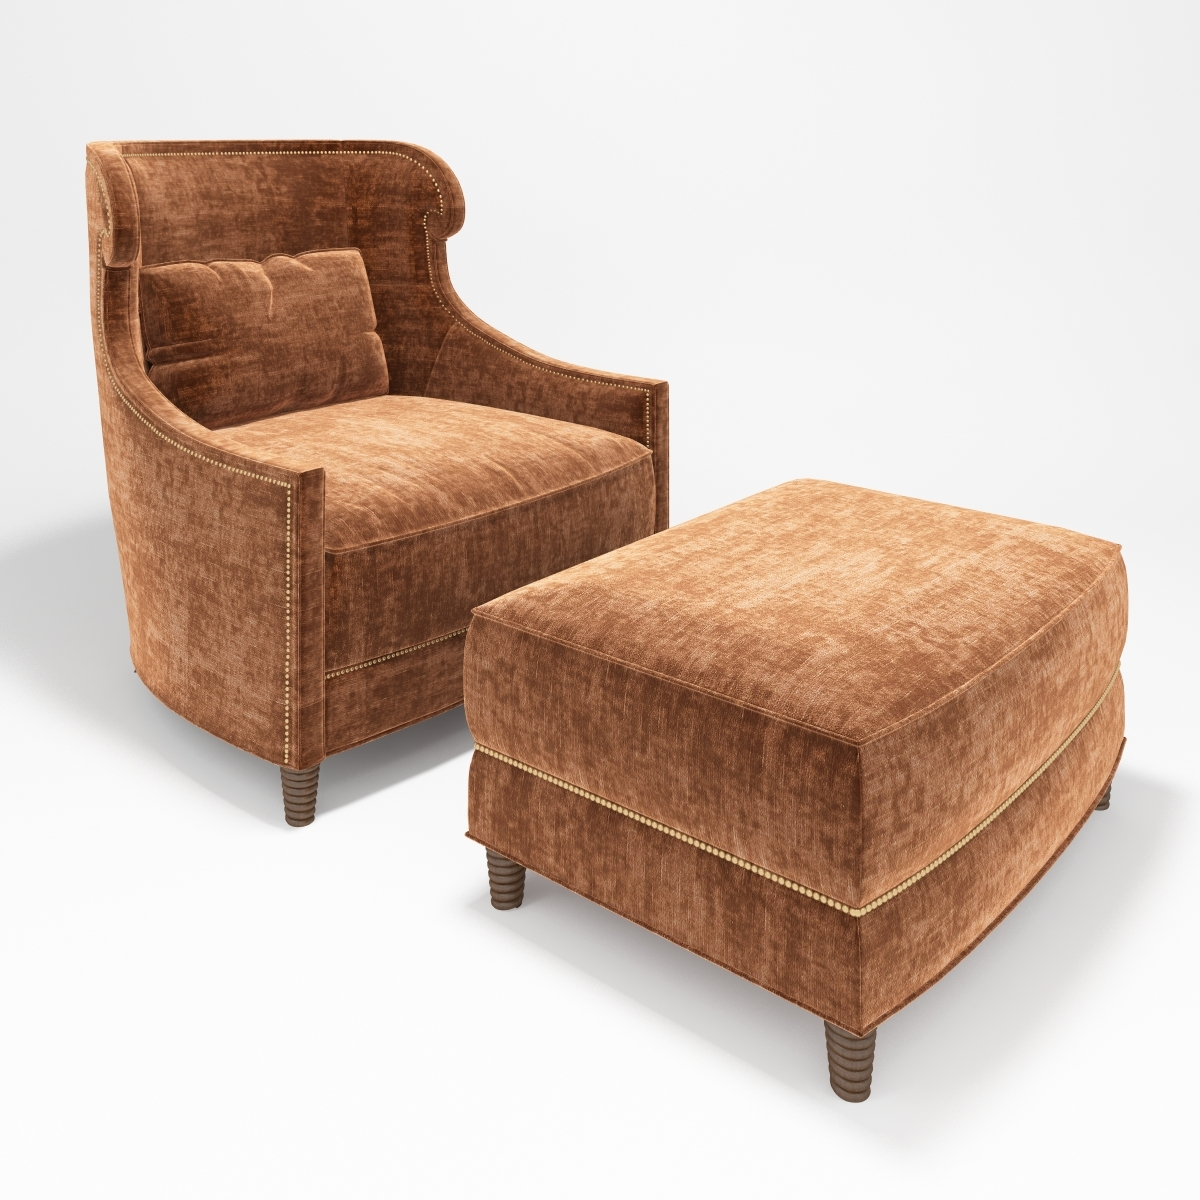 Sensational Baker Tuileries Armchair And Ottoman Ibusinesslaw Wood Chair Design Ideas Ibusinesslaworg